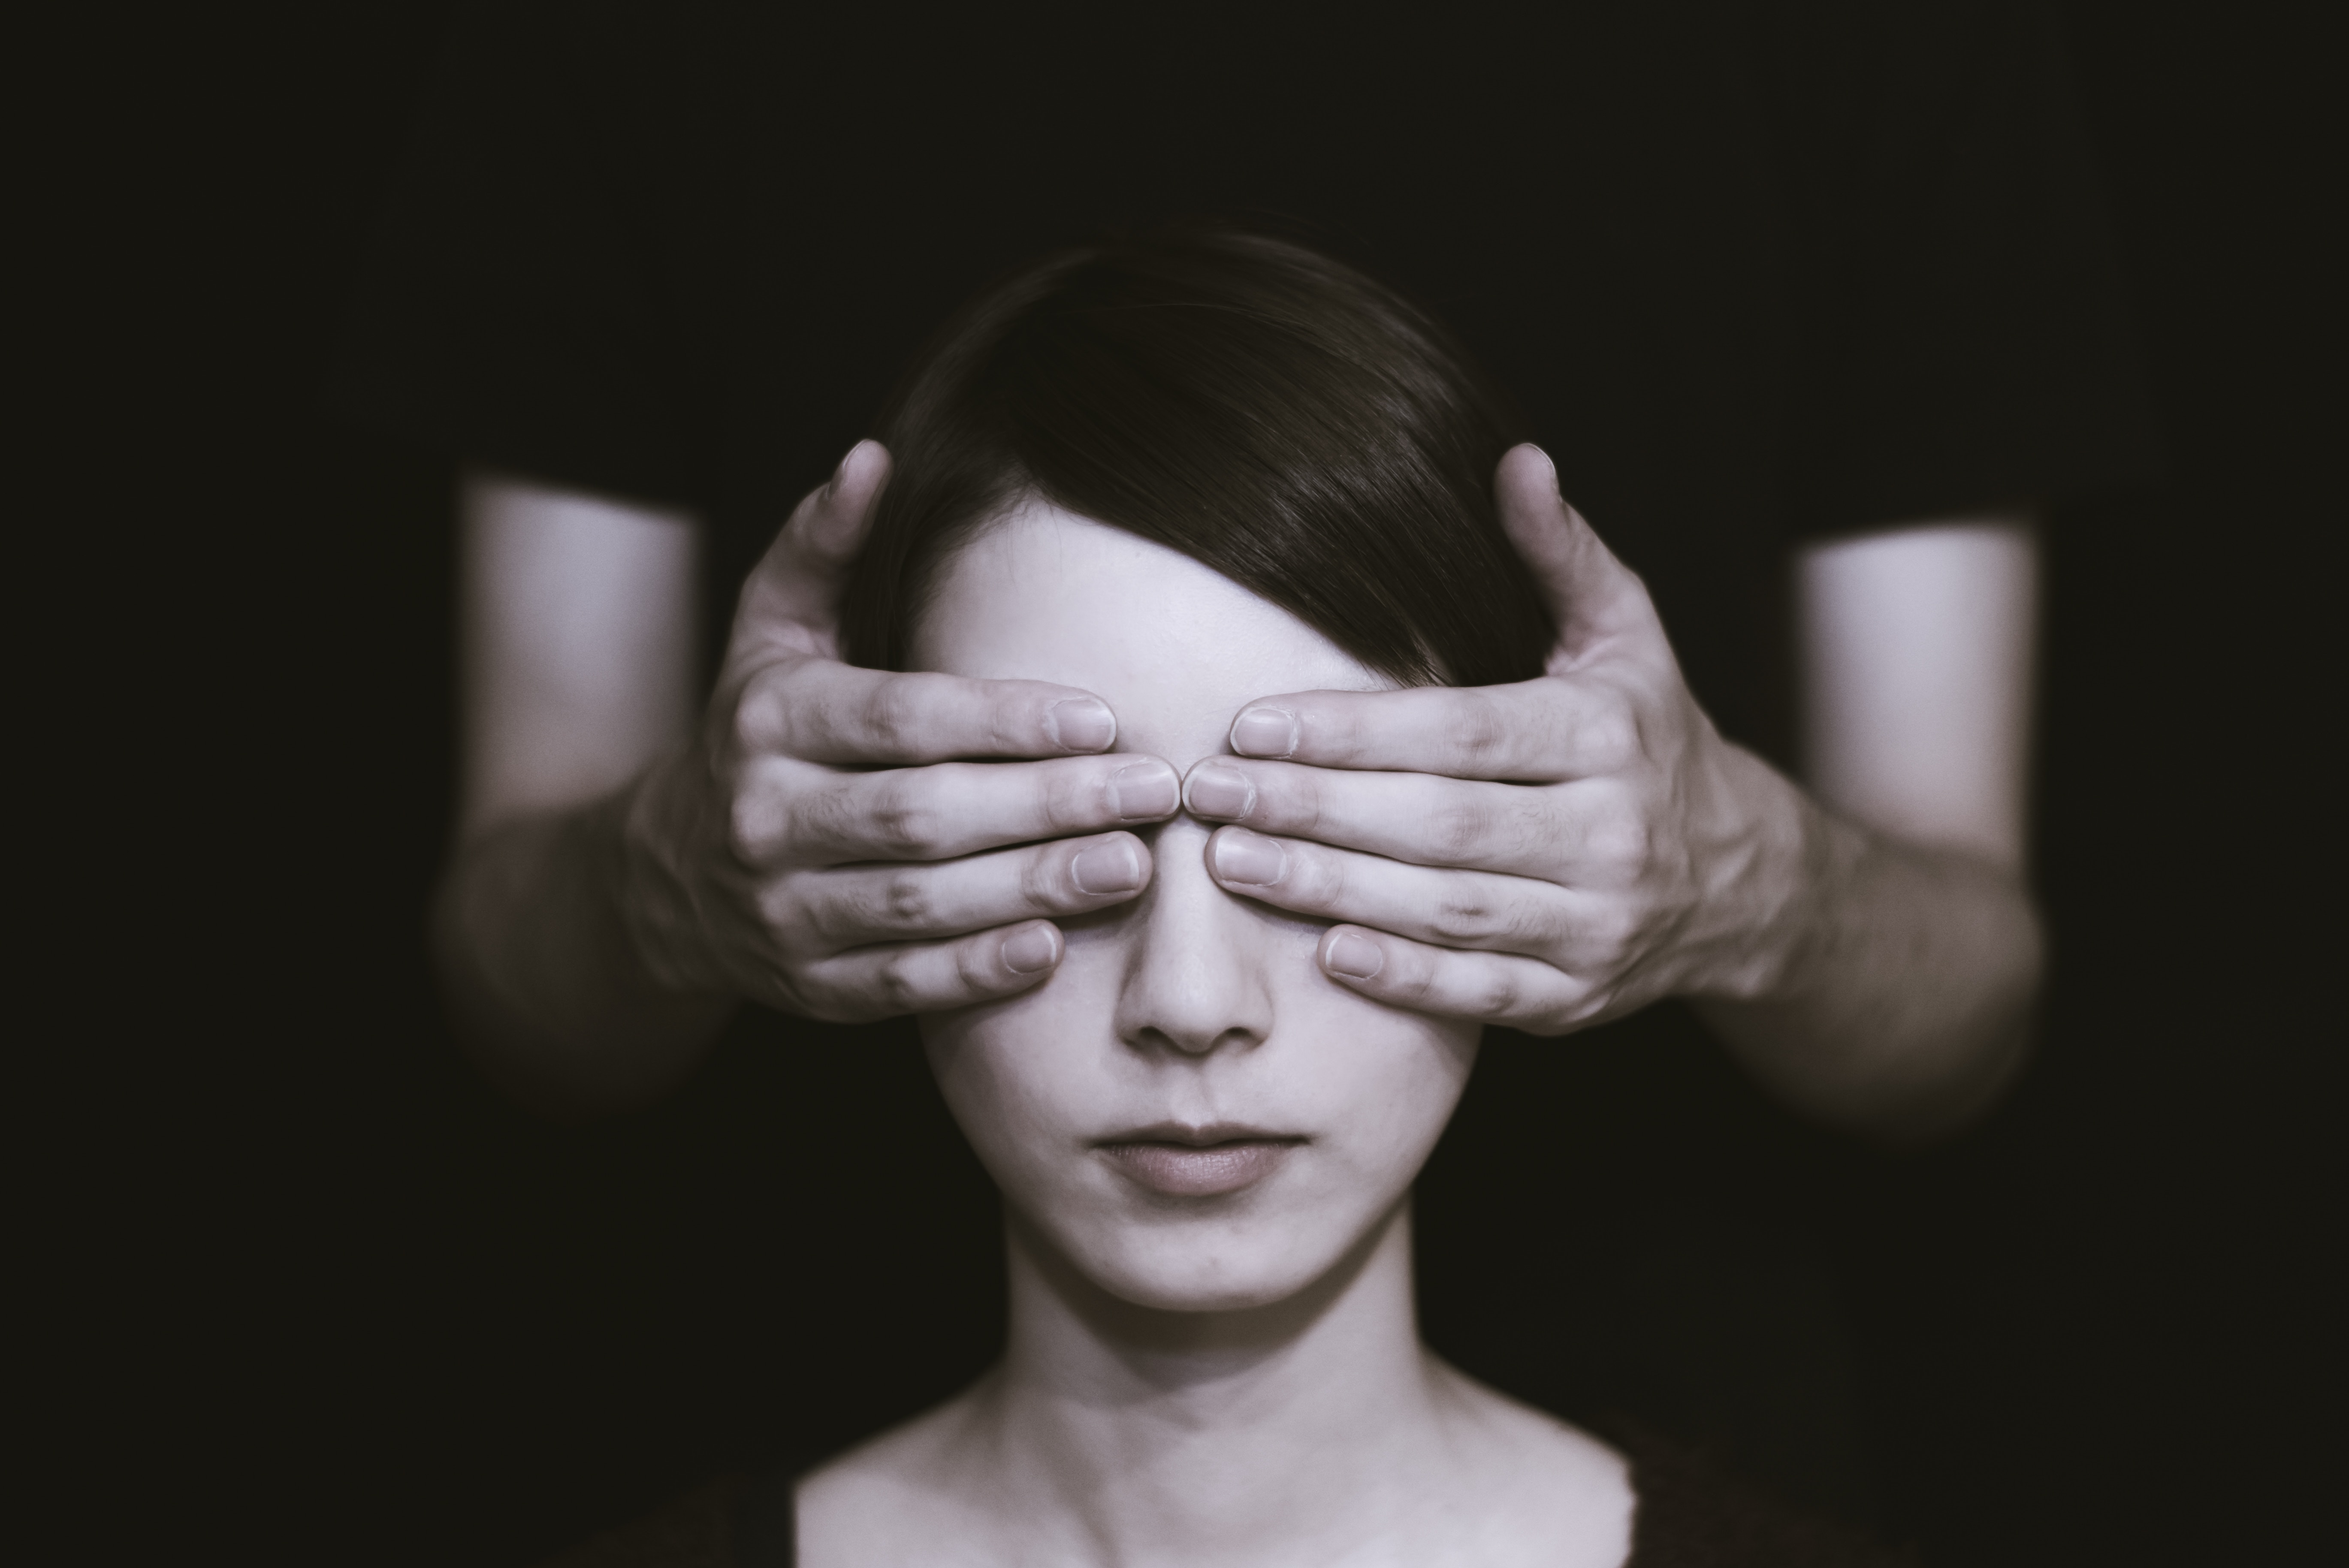 black and white photo of a woman whose eyes are being covering by someone's hands standing behind her